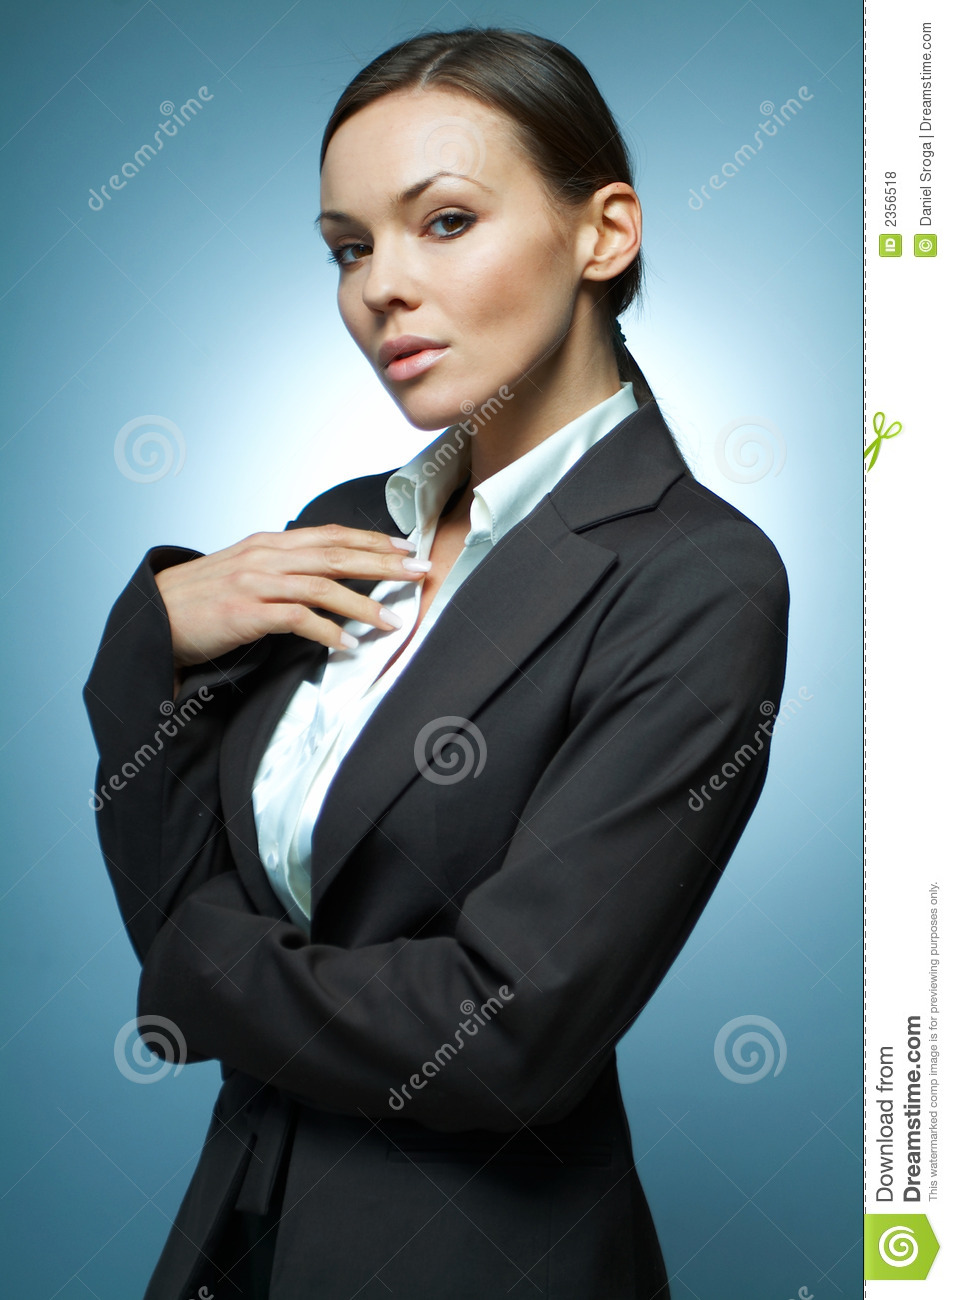 Beautiful and brunette business woman isolated on clear background.